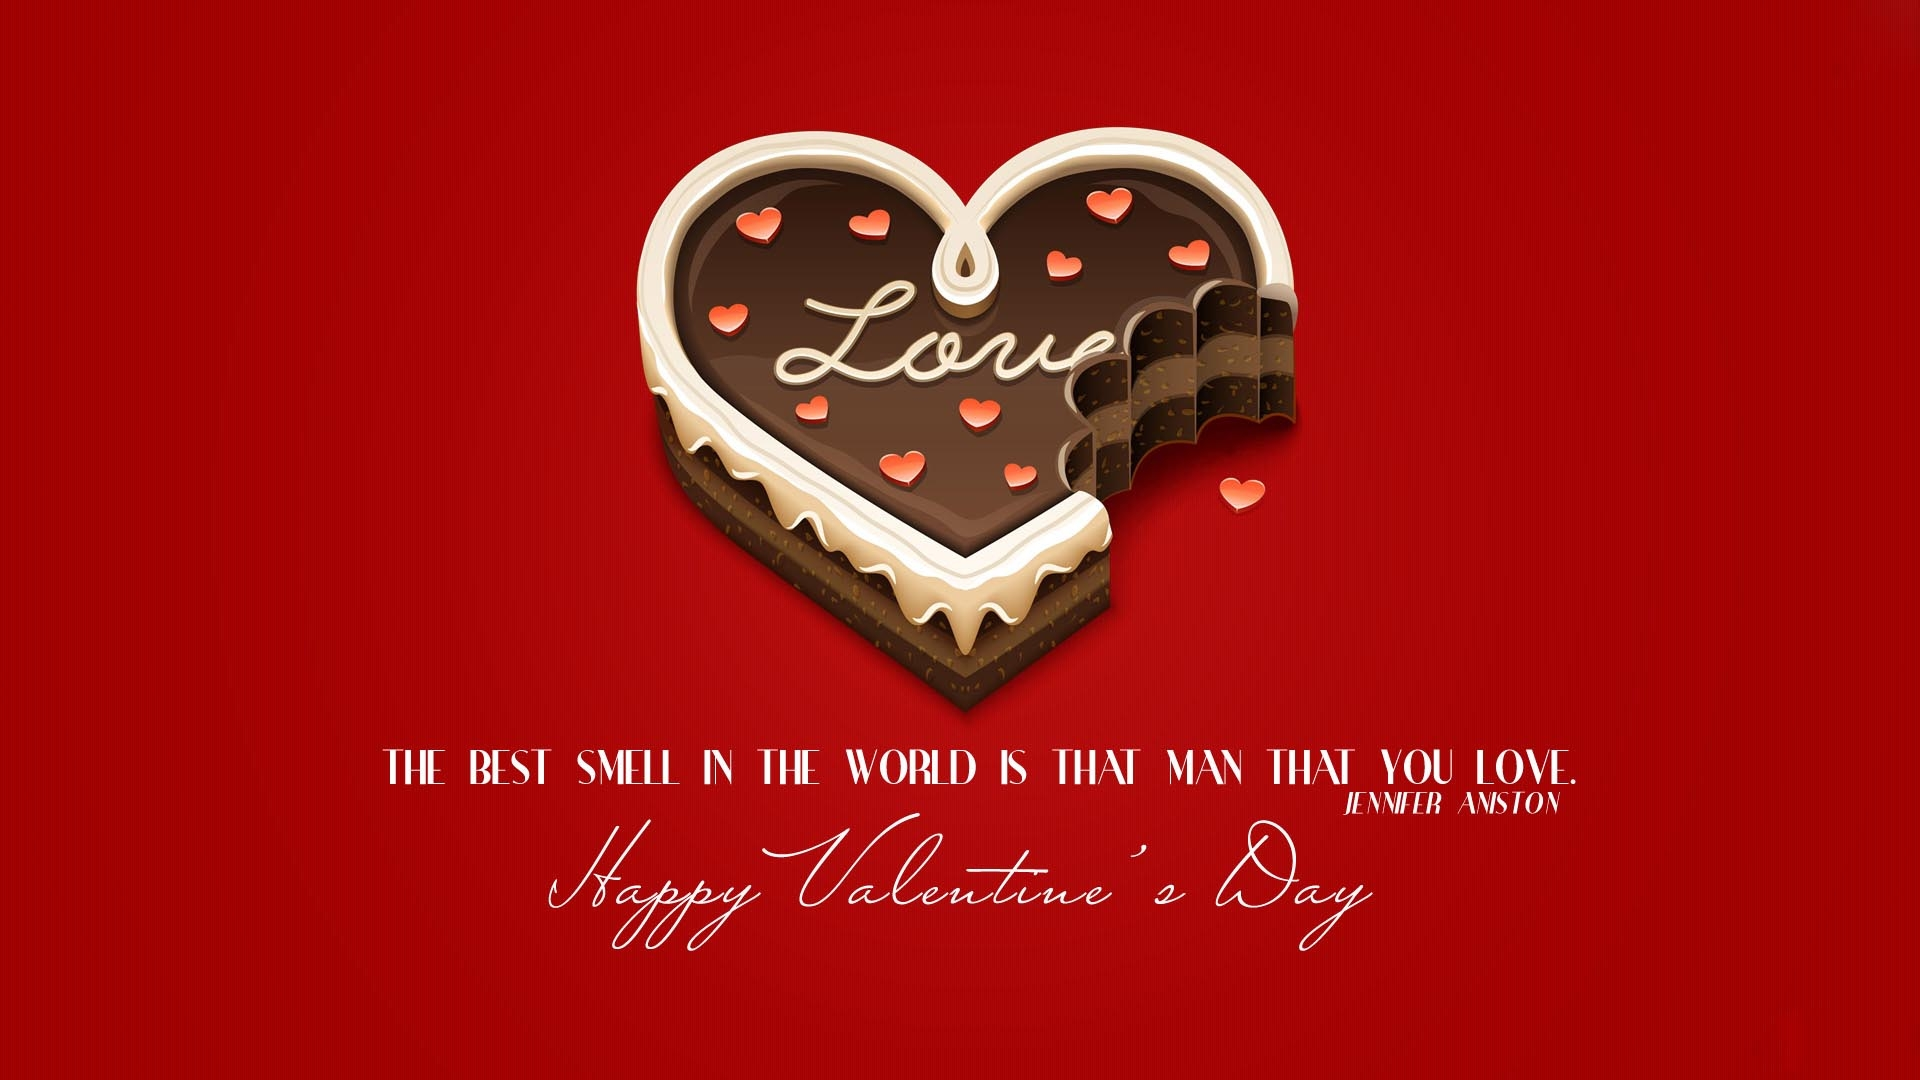 Free download Happy Chocolate Day Valentines Day Wallpapers Hd